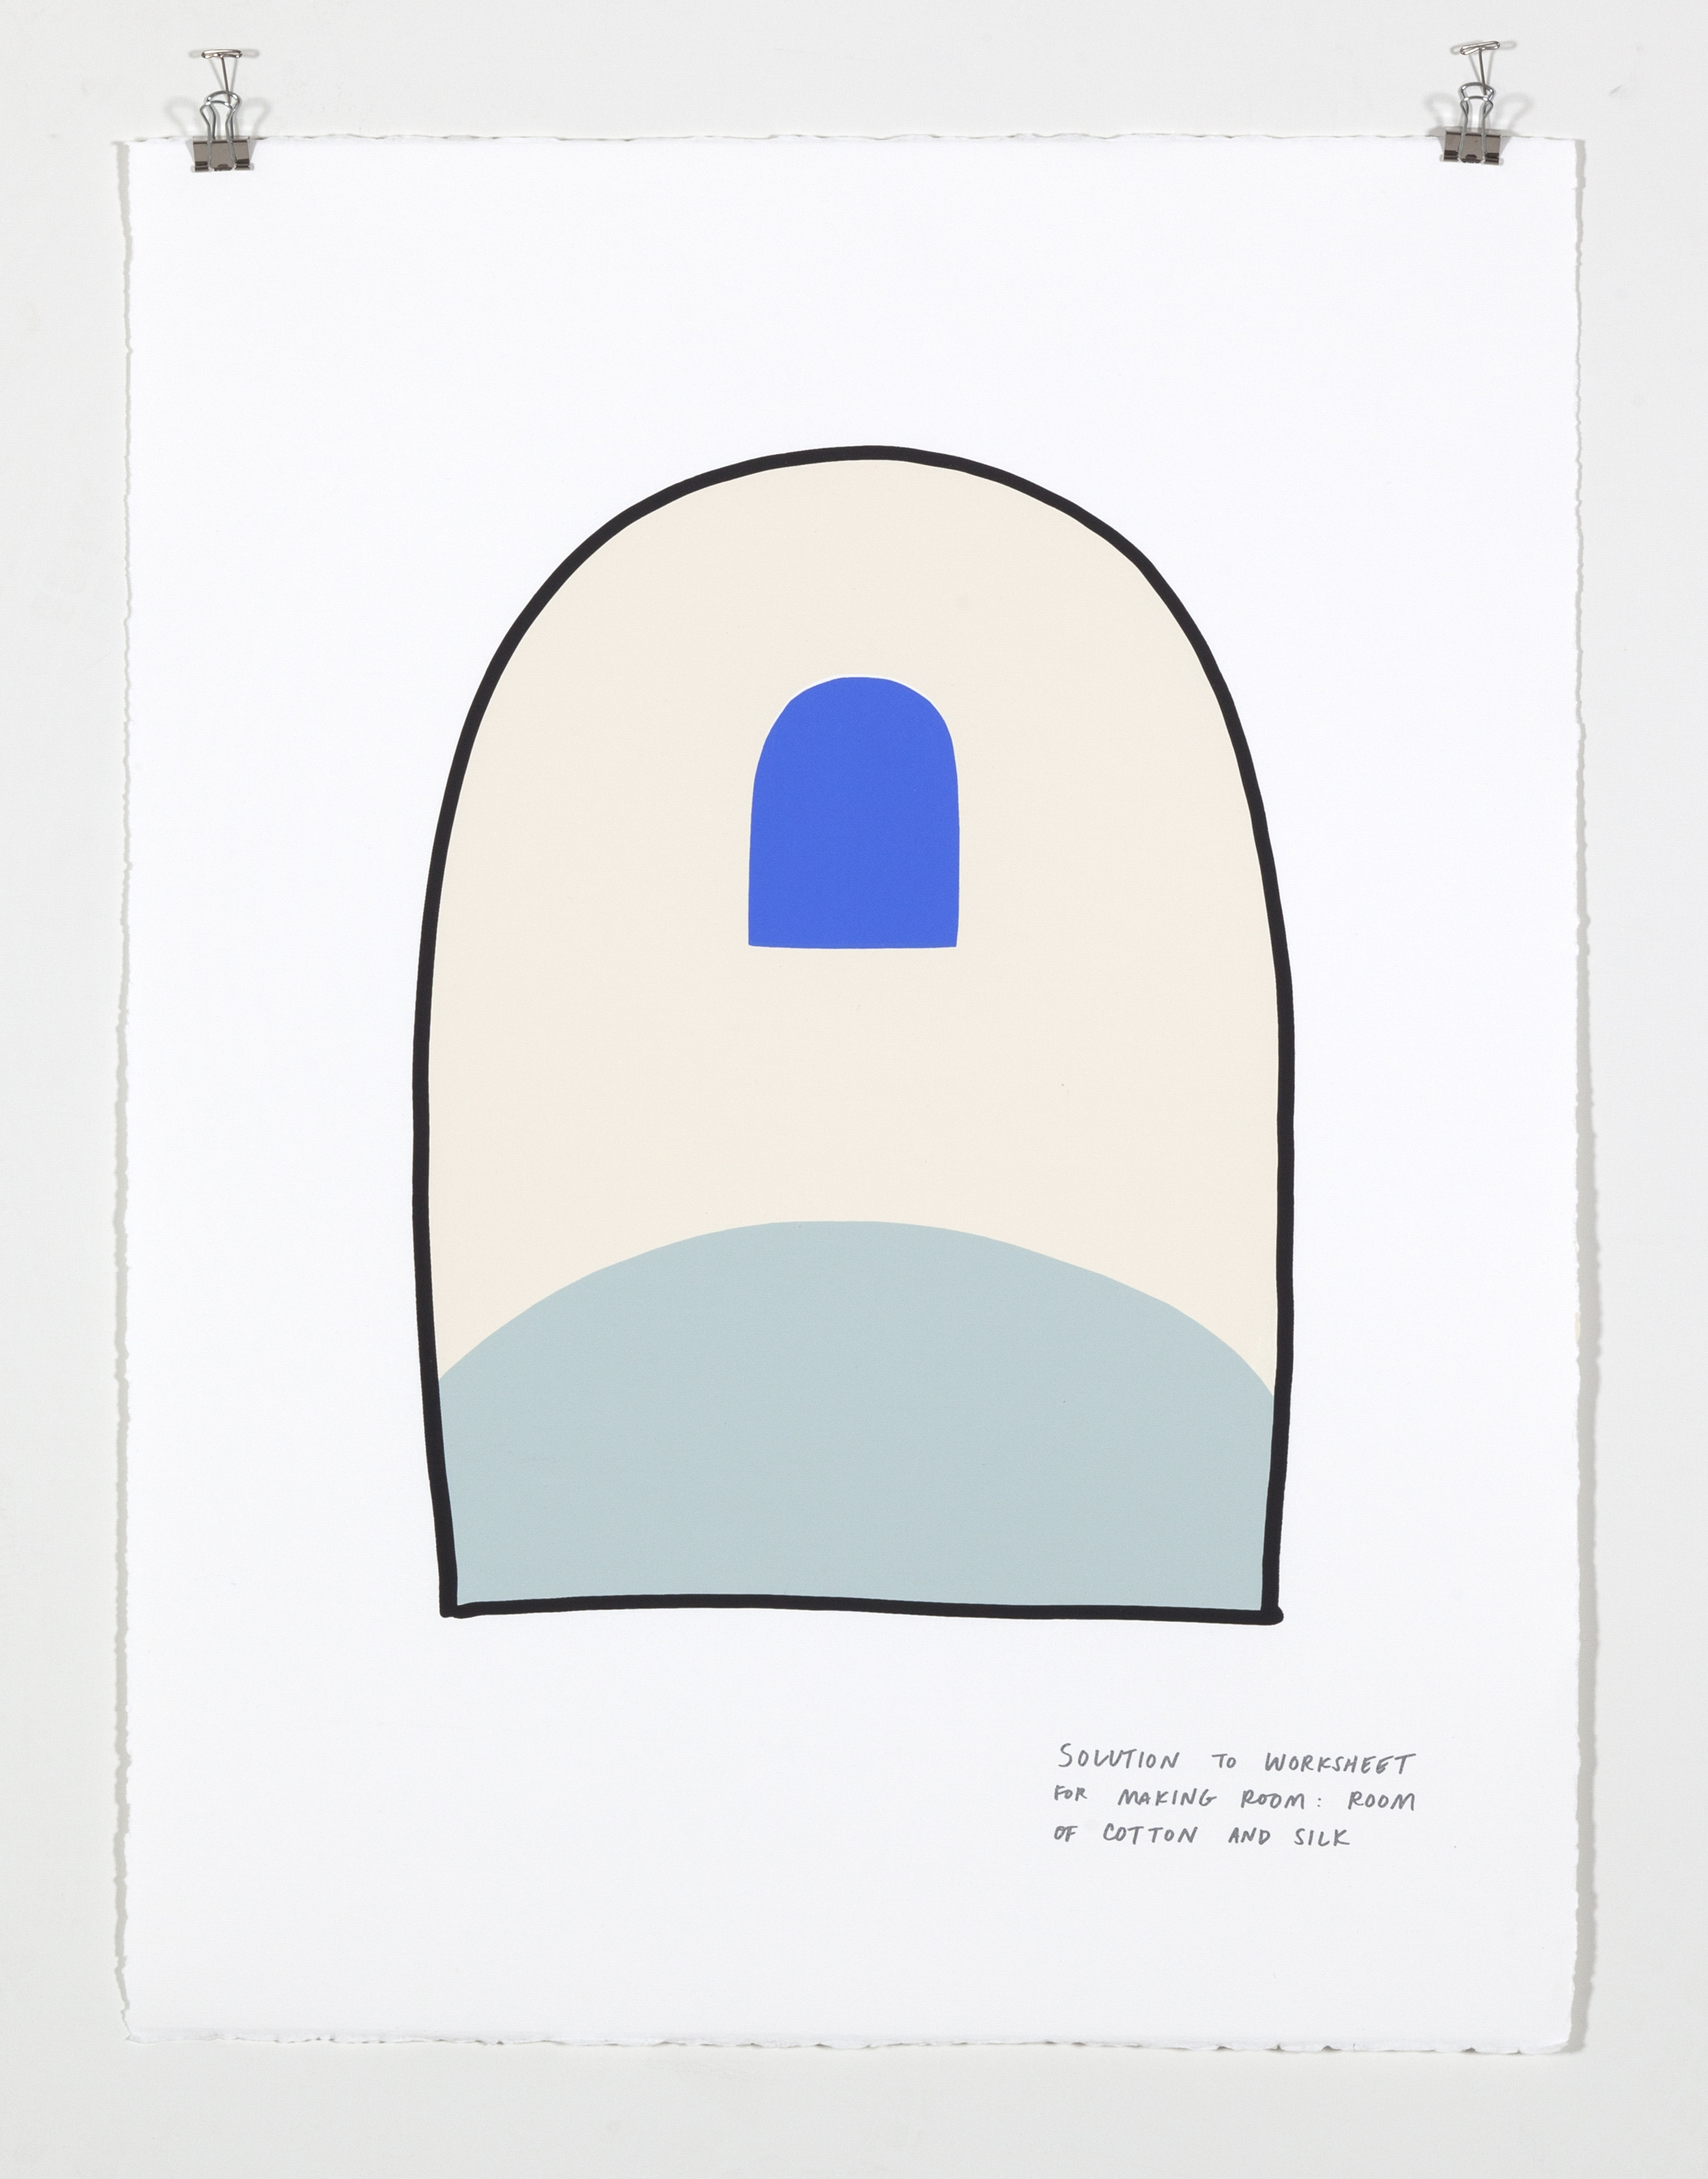 Solution to Worksheet for Making Room: Room of Cotton and Silk,  2018  Five color silkscreen print on paper 19 7/8 x 25 7/8 inches